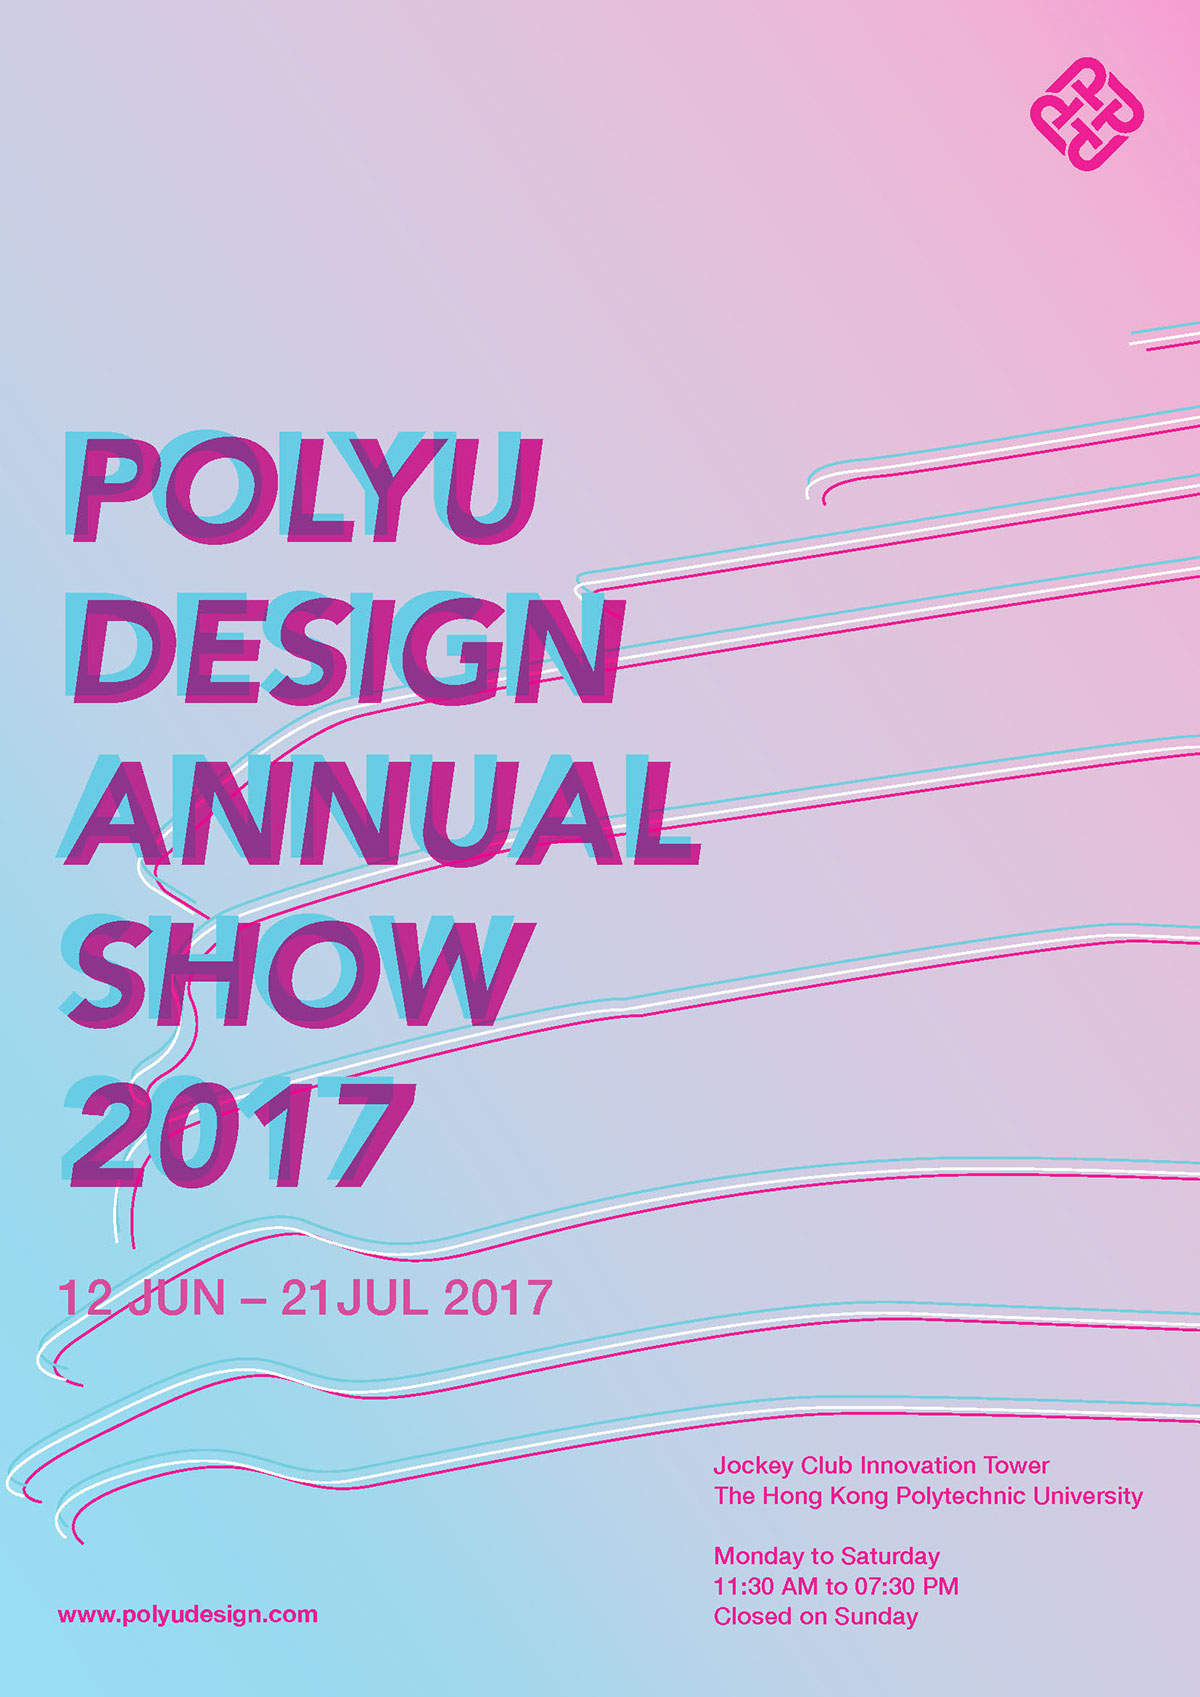 Poster design university - Two Sets Of Proposed Poster Design For The Hong Kong Polytechnic University Design Annual Show 2017